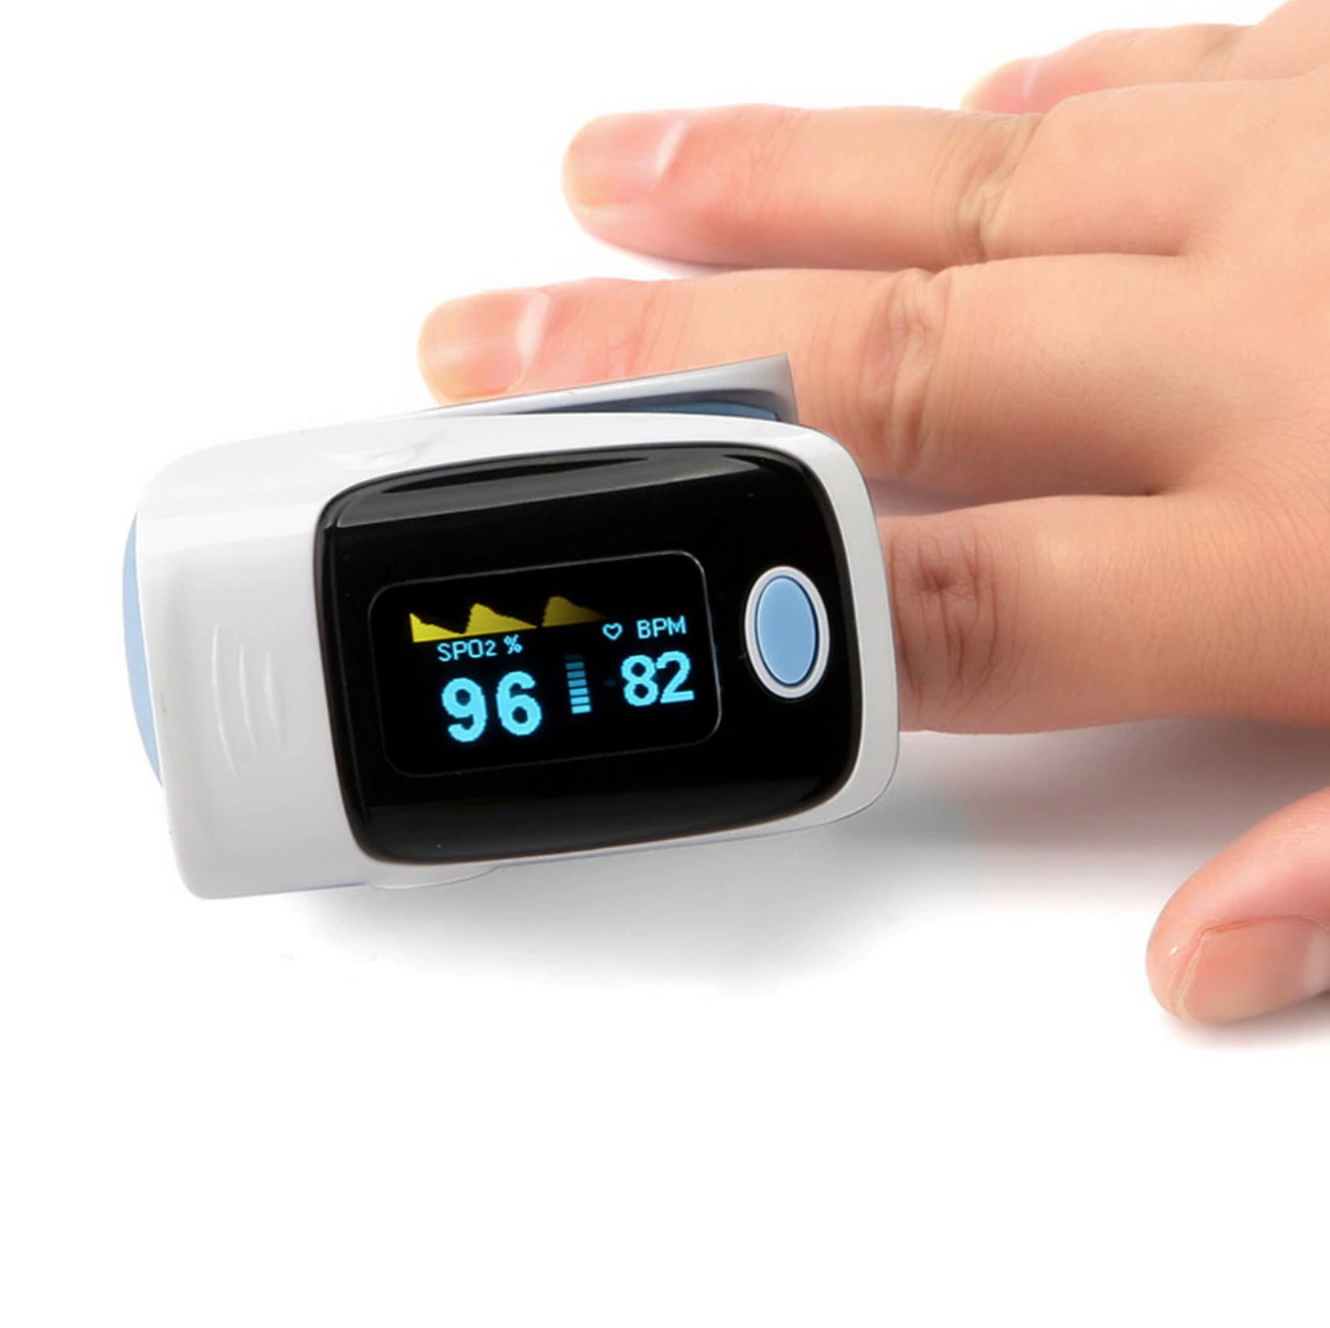 Premium Finger Blood Heart Rate Pulse Oximeter - Shopptique